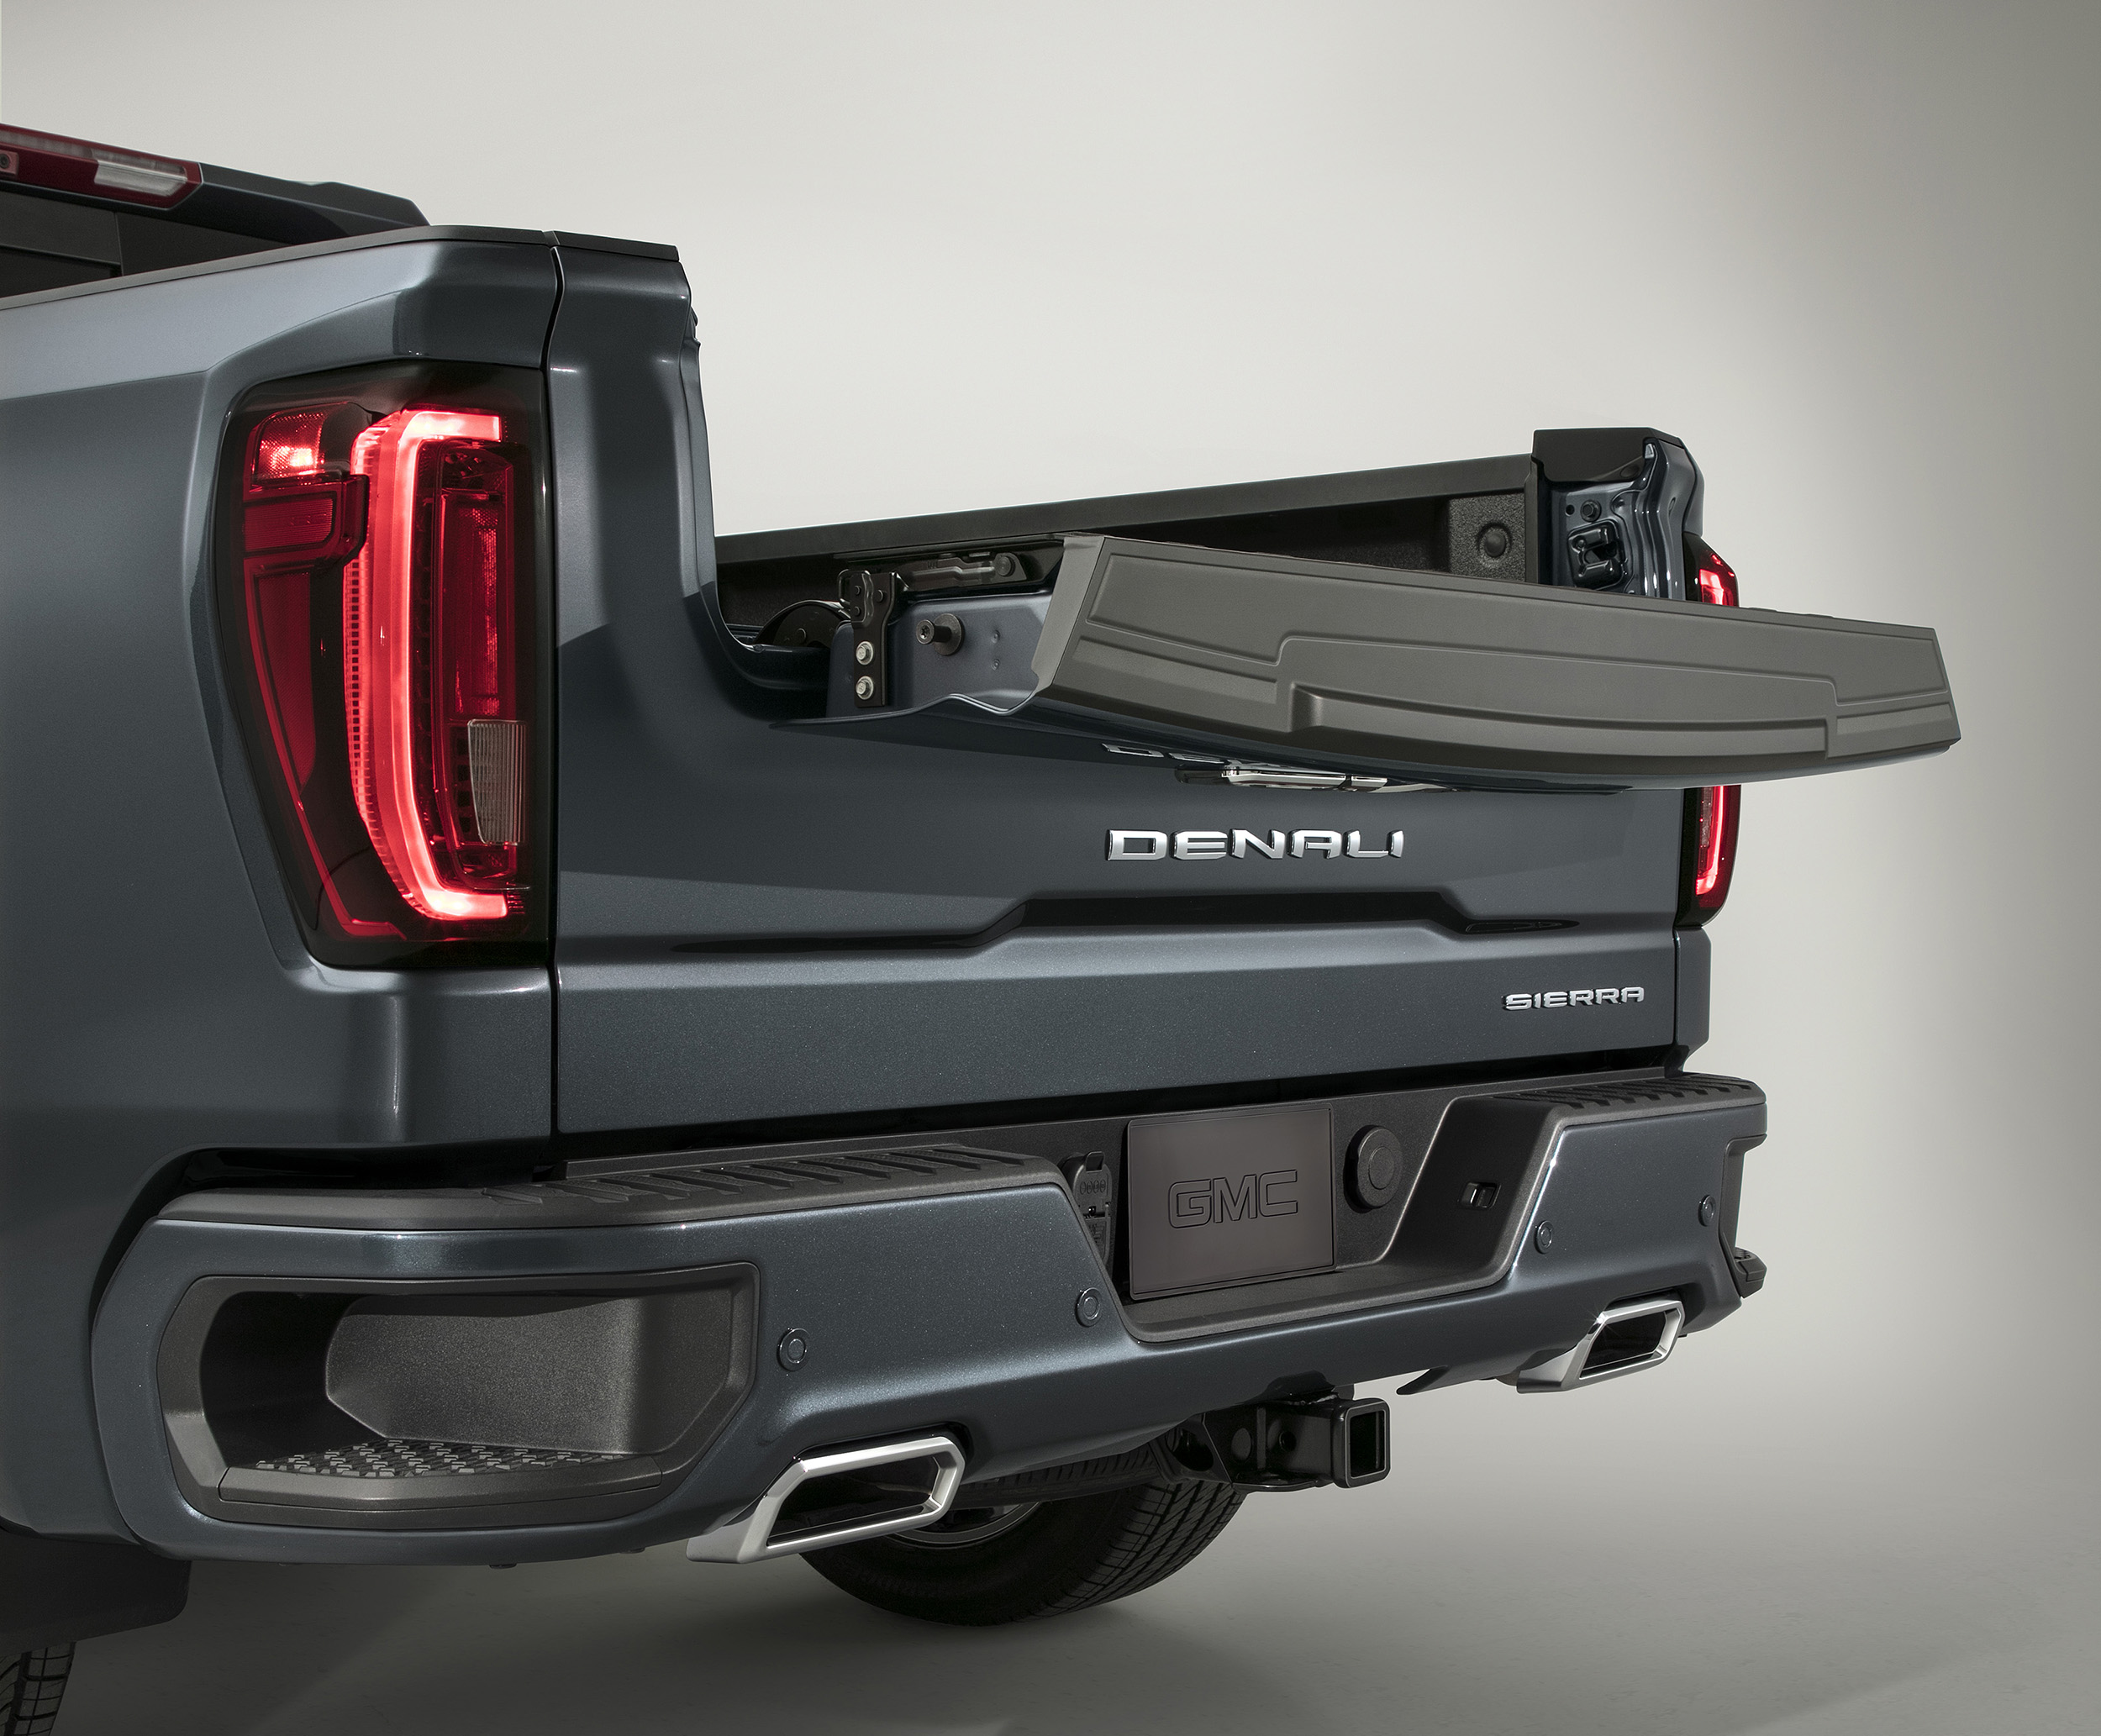 2019 GMC Sierra 1500: Tailgate of the Future